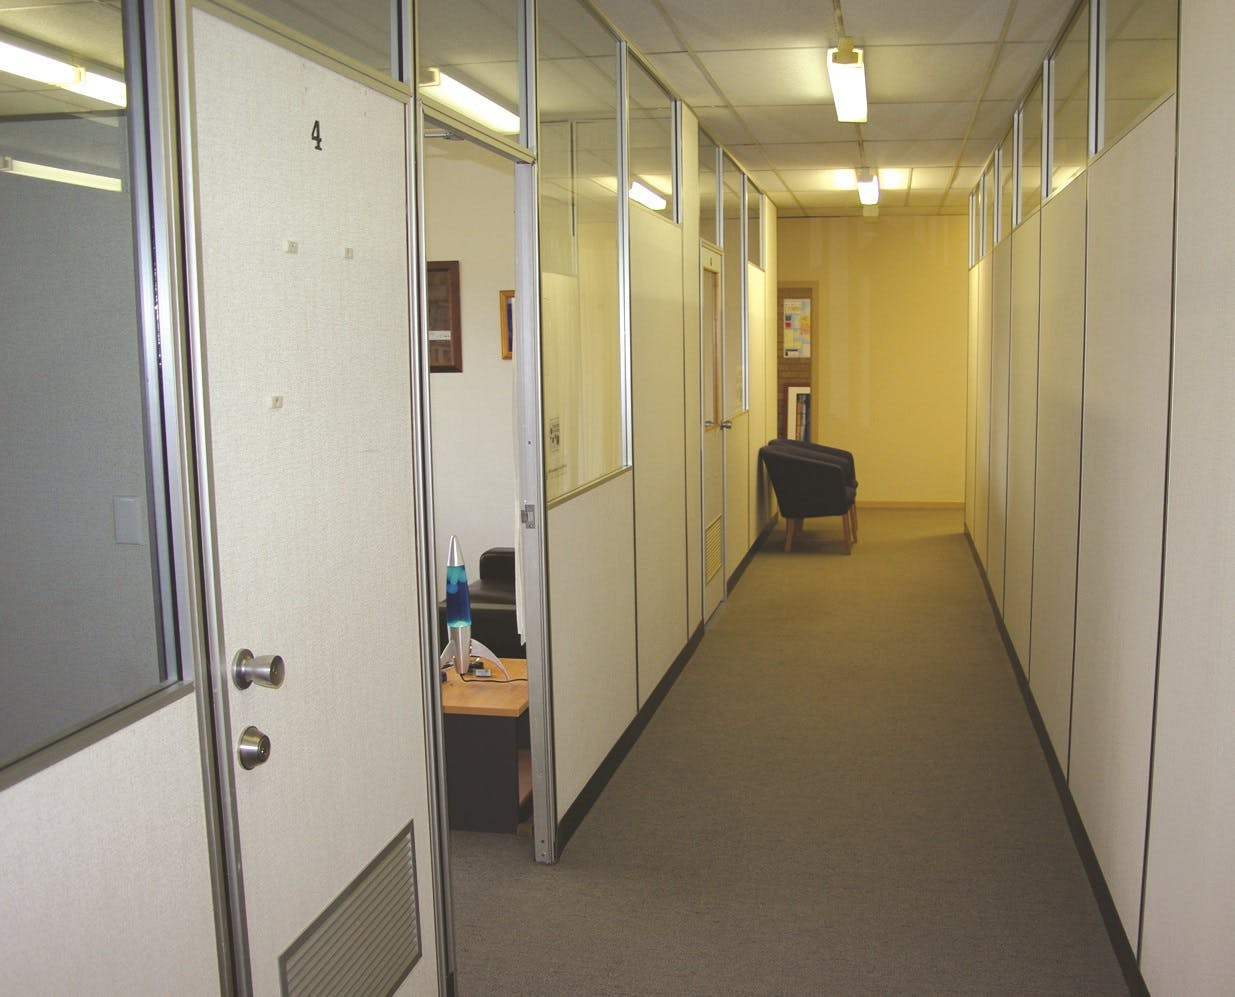 Office 8, private office at Bendigo 1, image 2